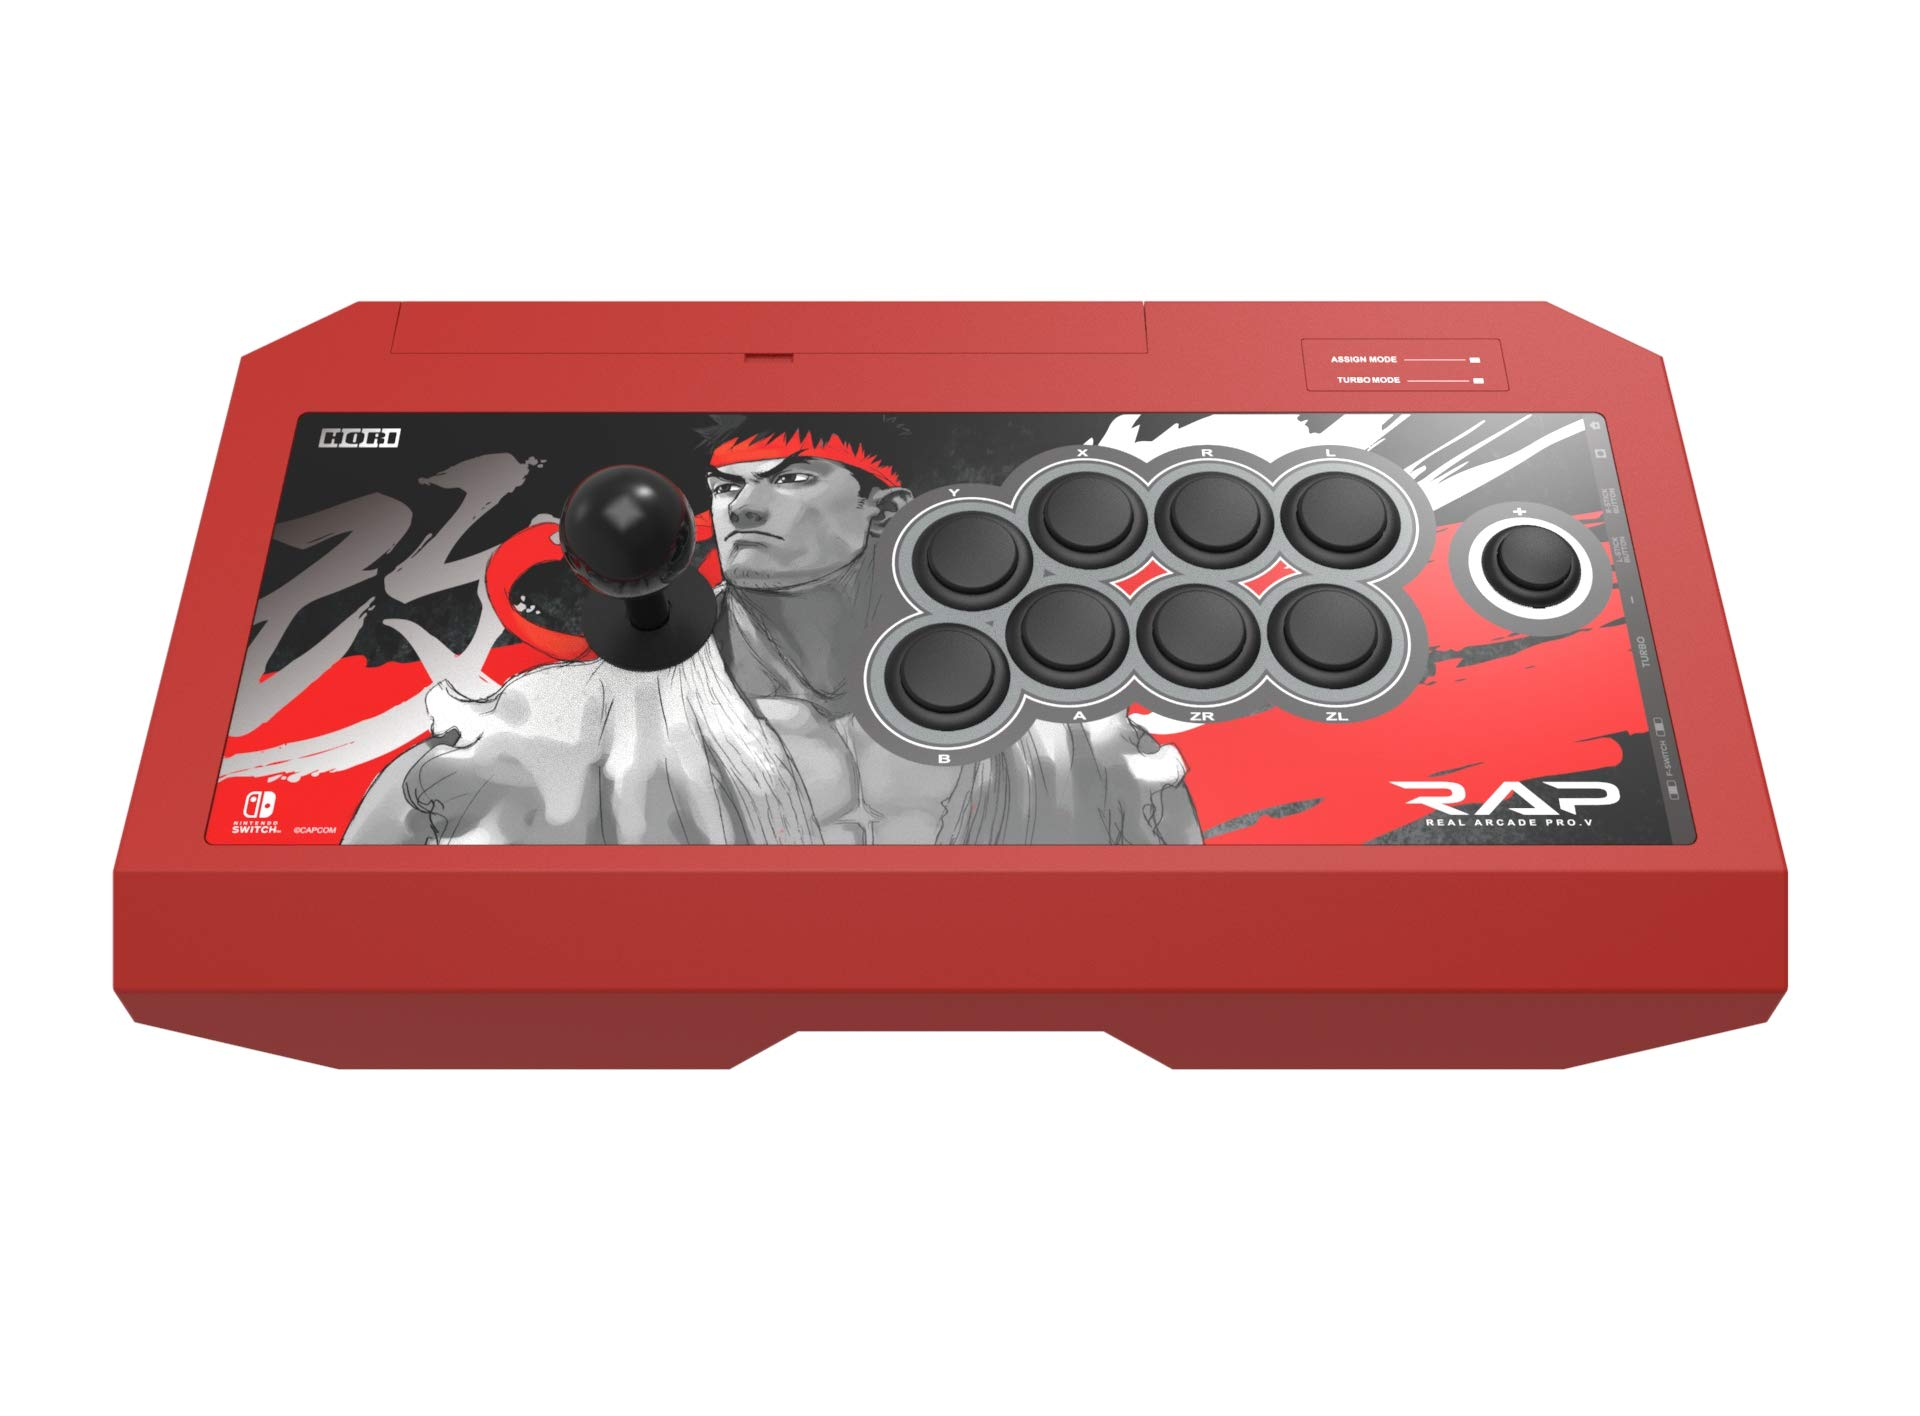 HORI Nintendo Switch Real Arcade Pro - Street Fighter Edition (Ryu) Officially Licensed By Nintendo & Capcom - Nintendo Switch